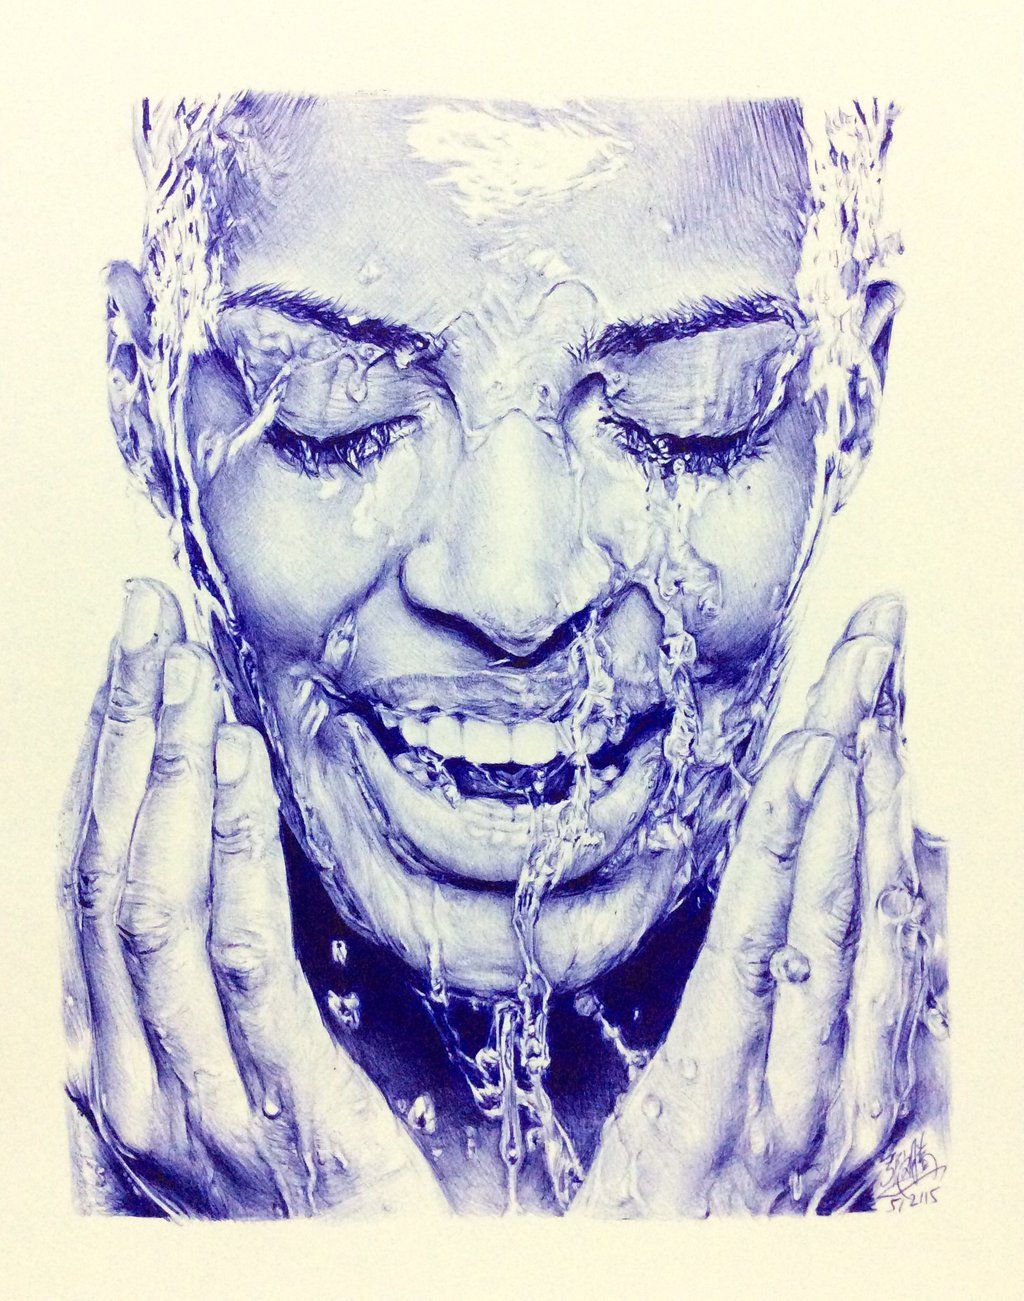 Bic ballpoint pen drawing by chaseroflightiantart on bic ballpoint pen drawing by chaseroflightiantart on deviantart ccuart Image collections